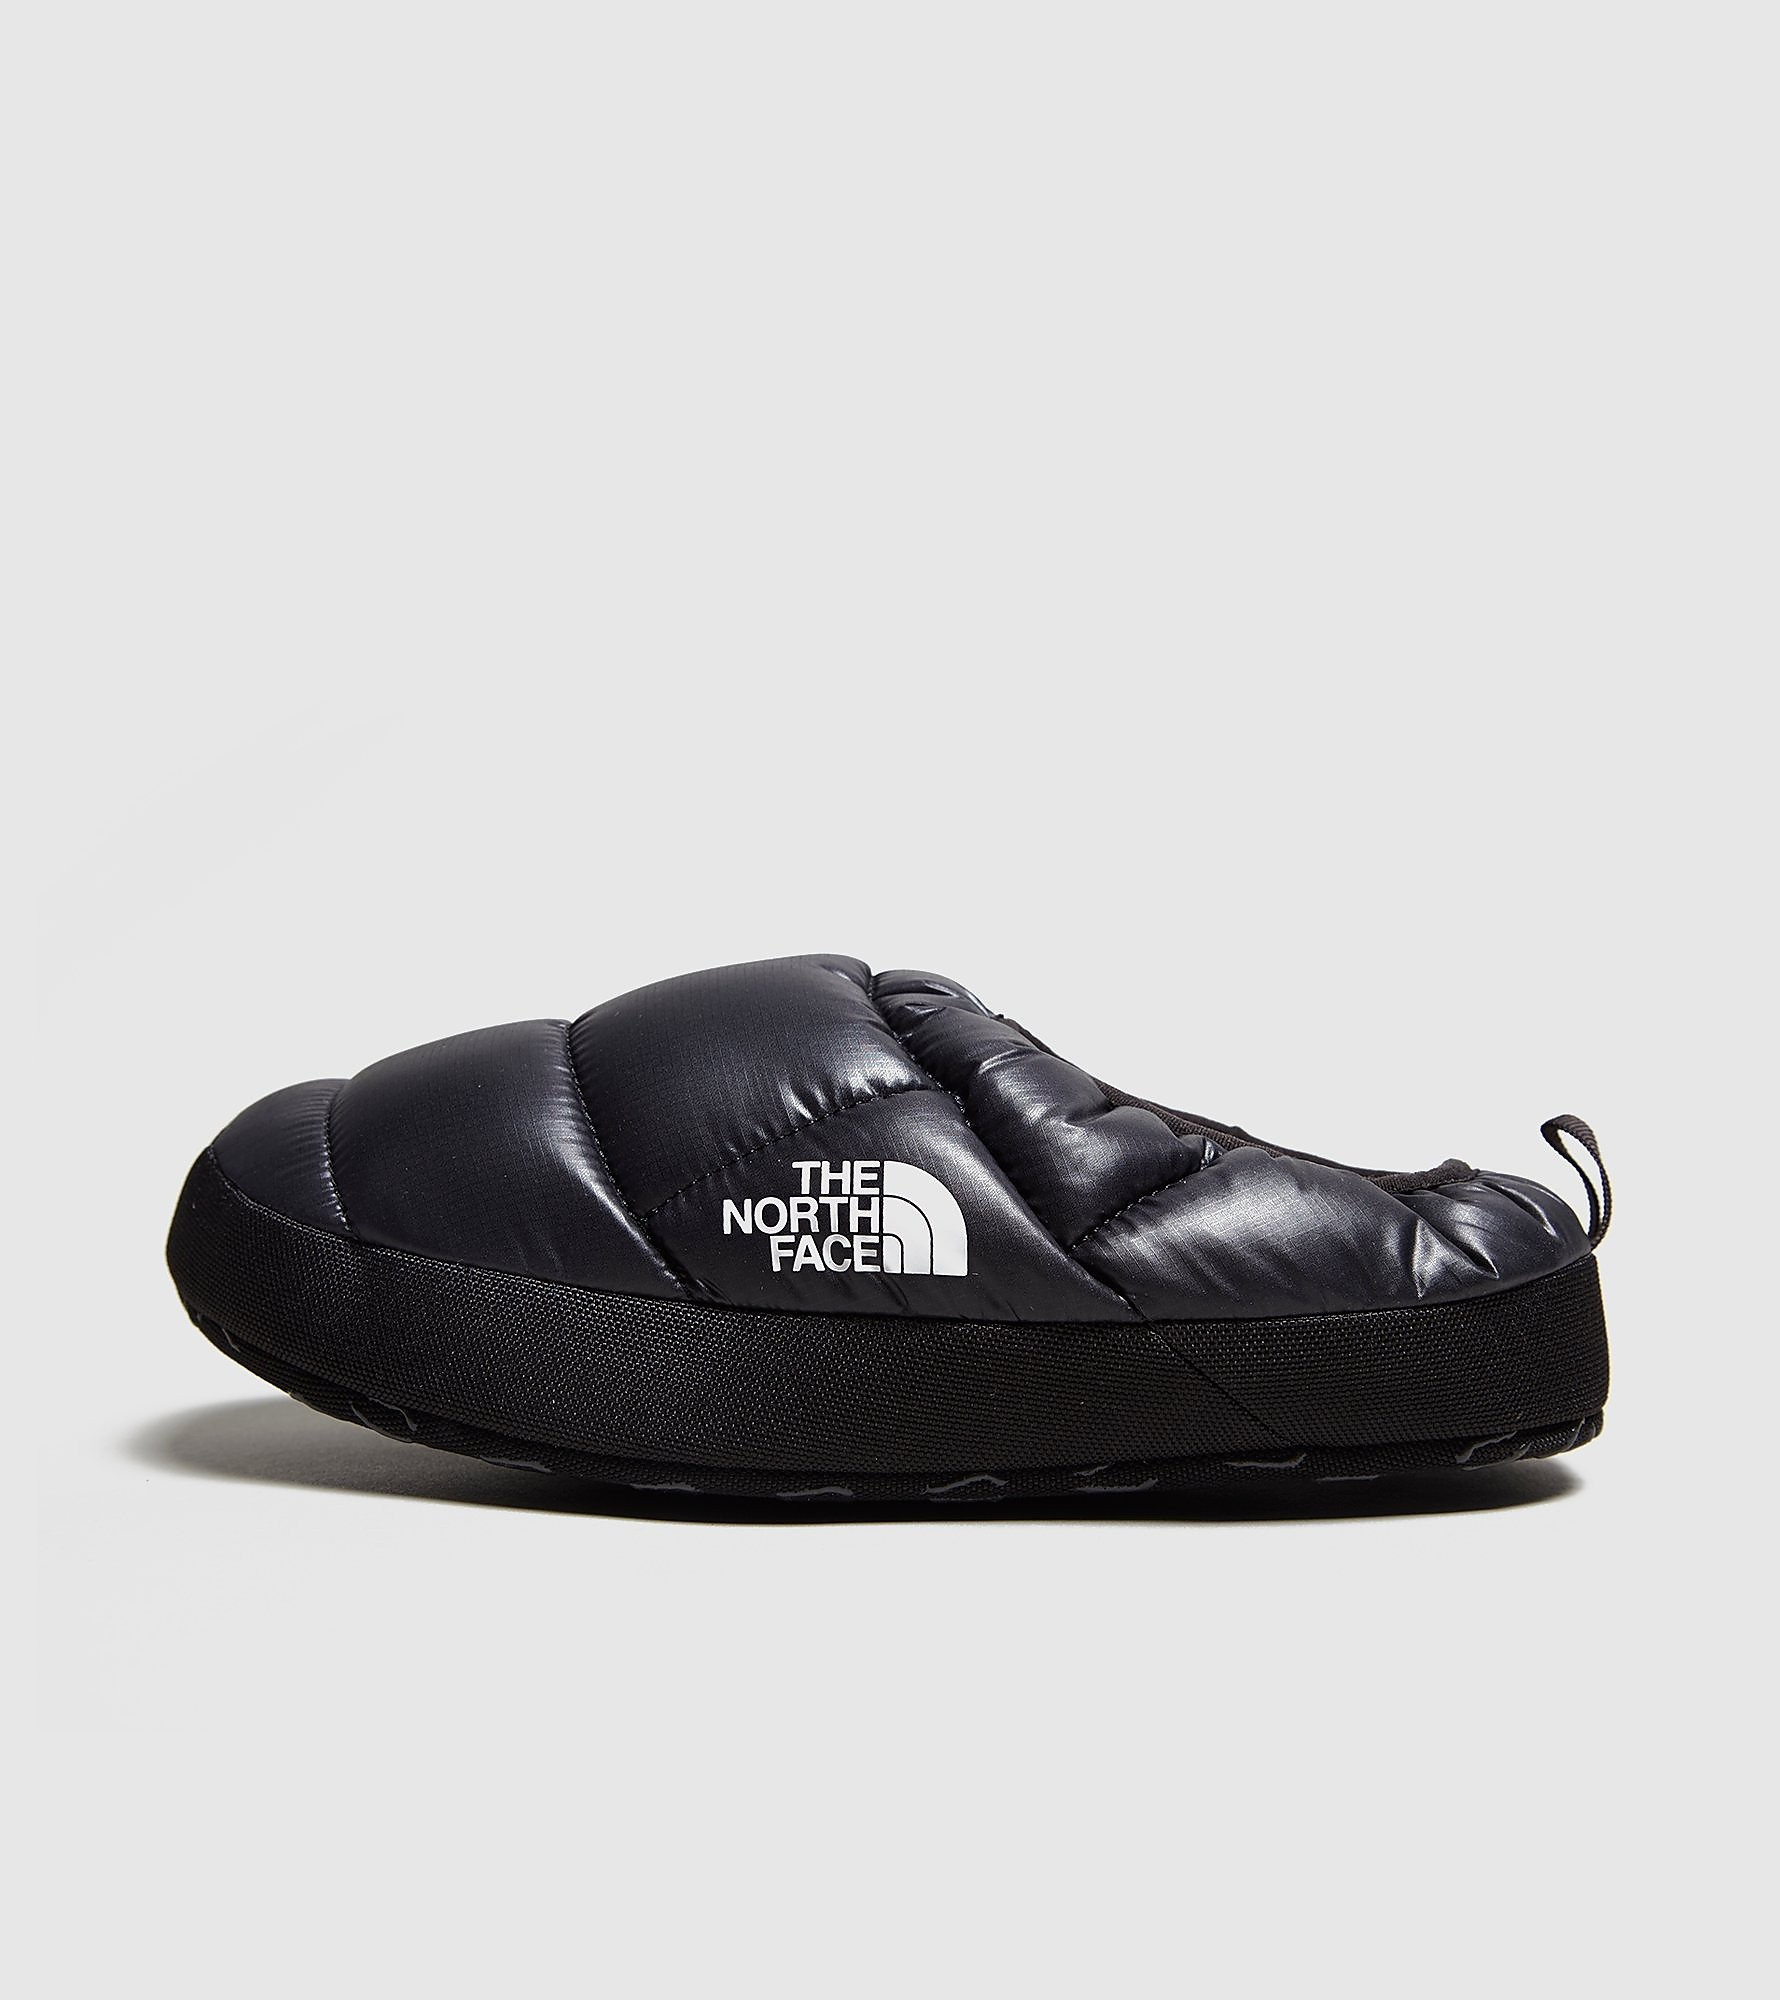 The North Face Tent Mule Slippers